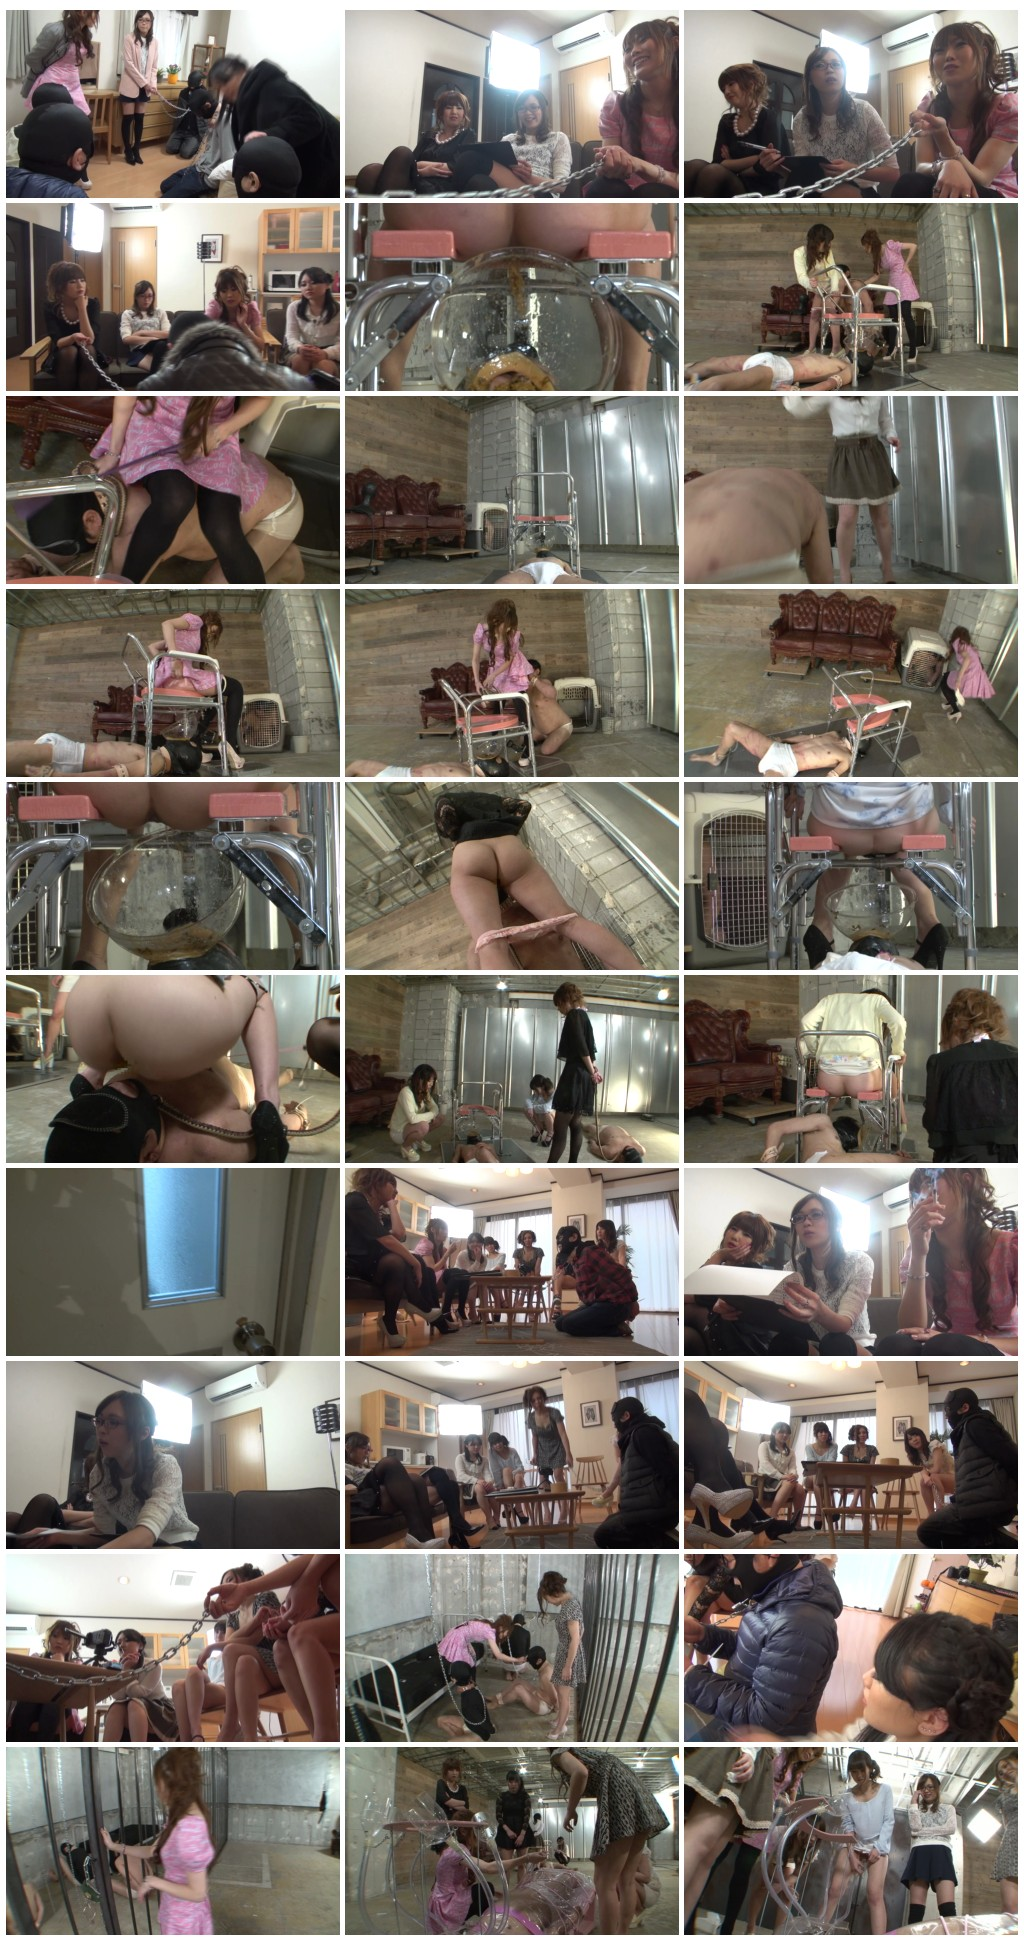 YMVB-02 -08 Yapoos Market Blu-Ray Remuxes [Scat, pissing, shit, defecation, Femdom ,Toilet Slavery, Drink pee, Anal Toys, Facesitting,Lick ass, Domination, Eat shit , Humiliations, scatting domination,Groups-Couples]